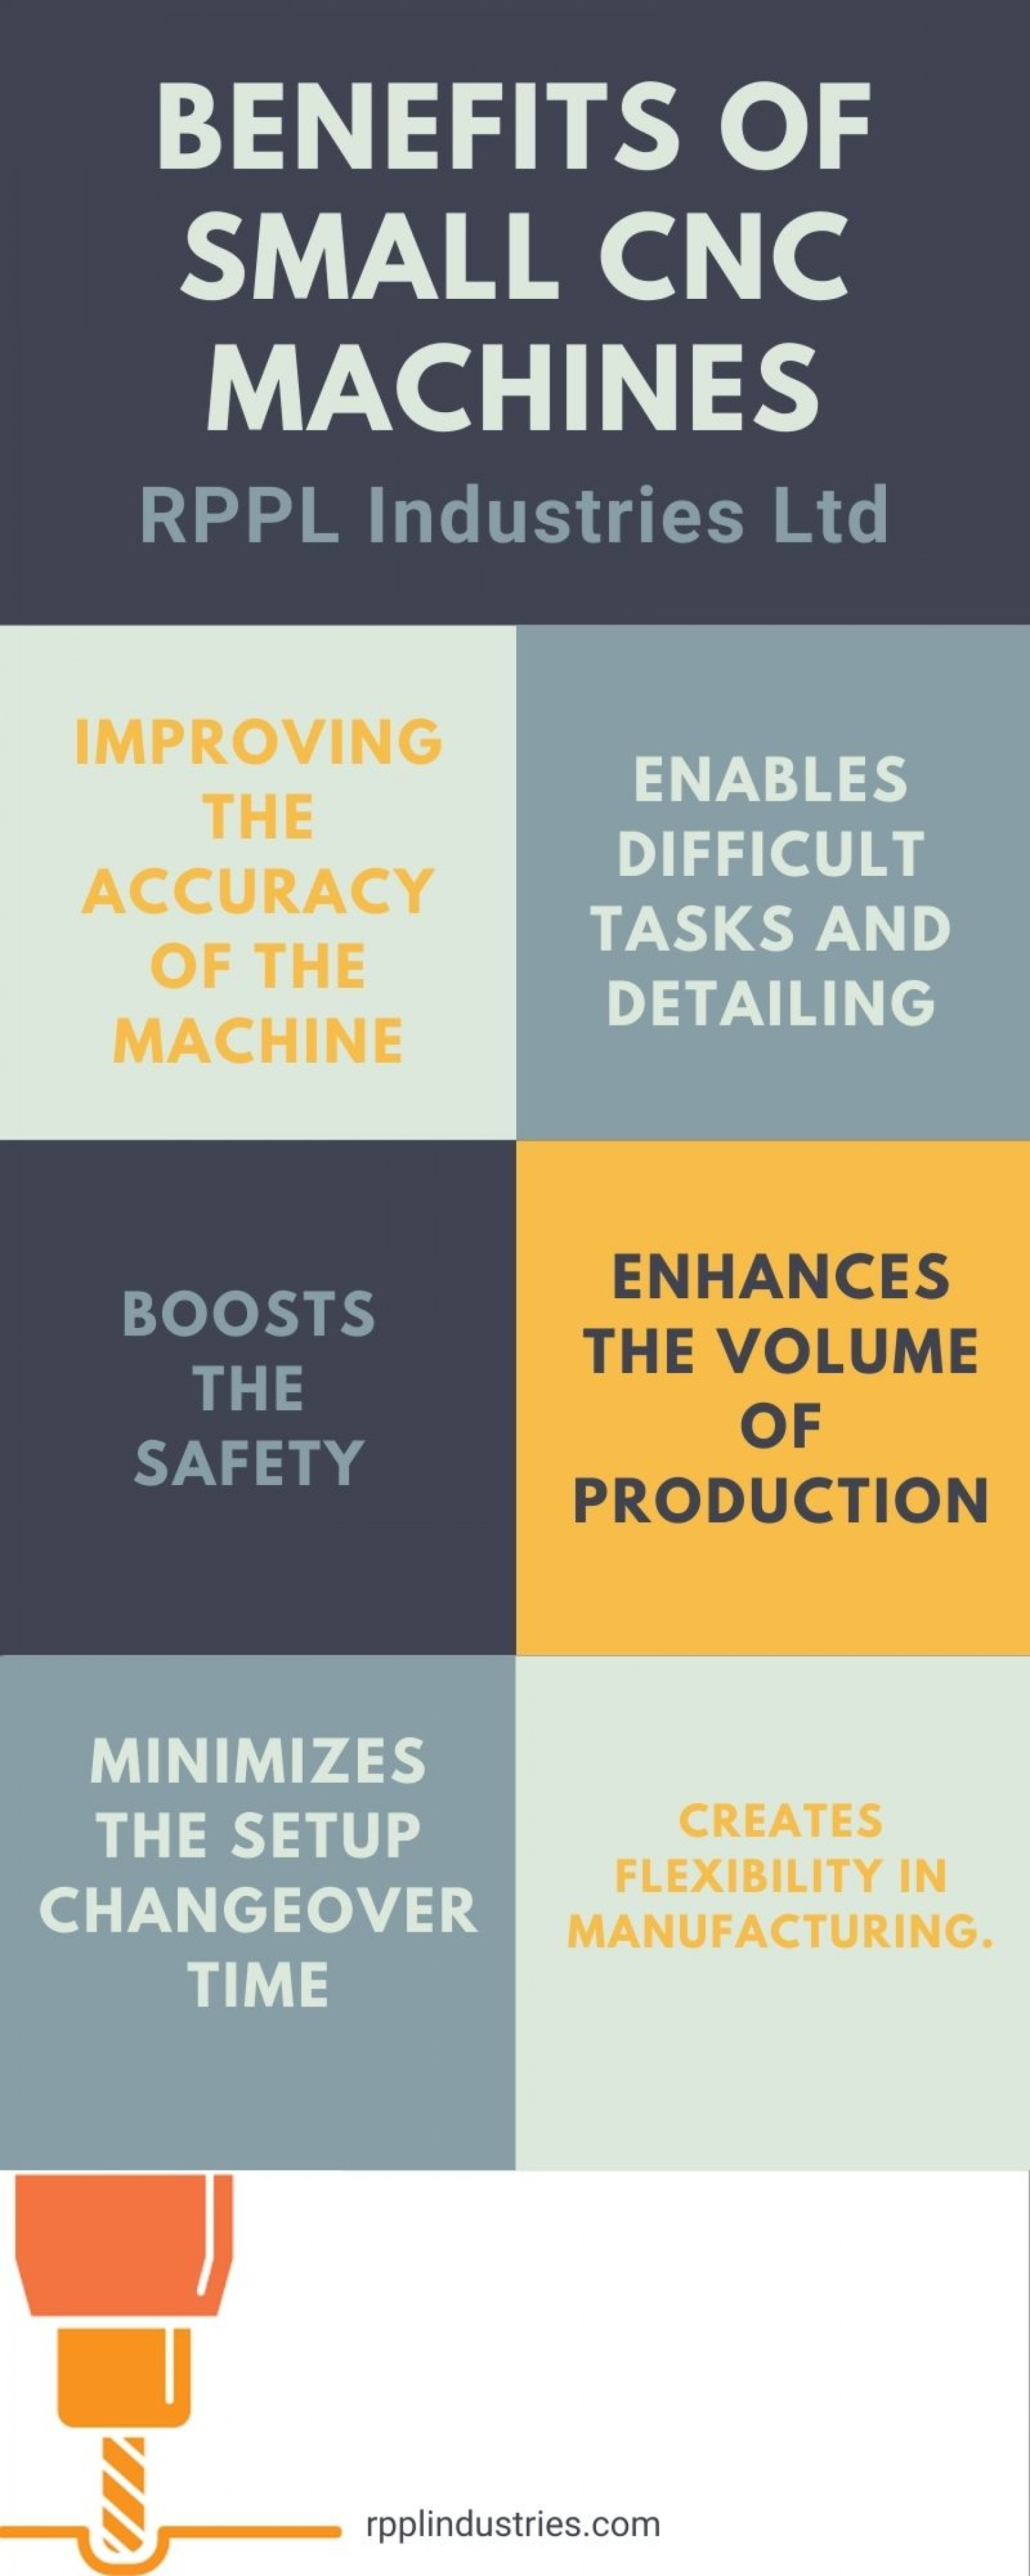 benefits of Small CNC machines Infographic